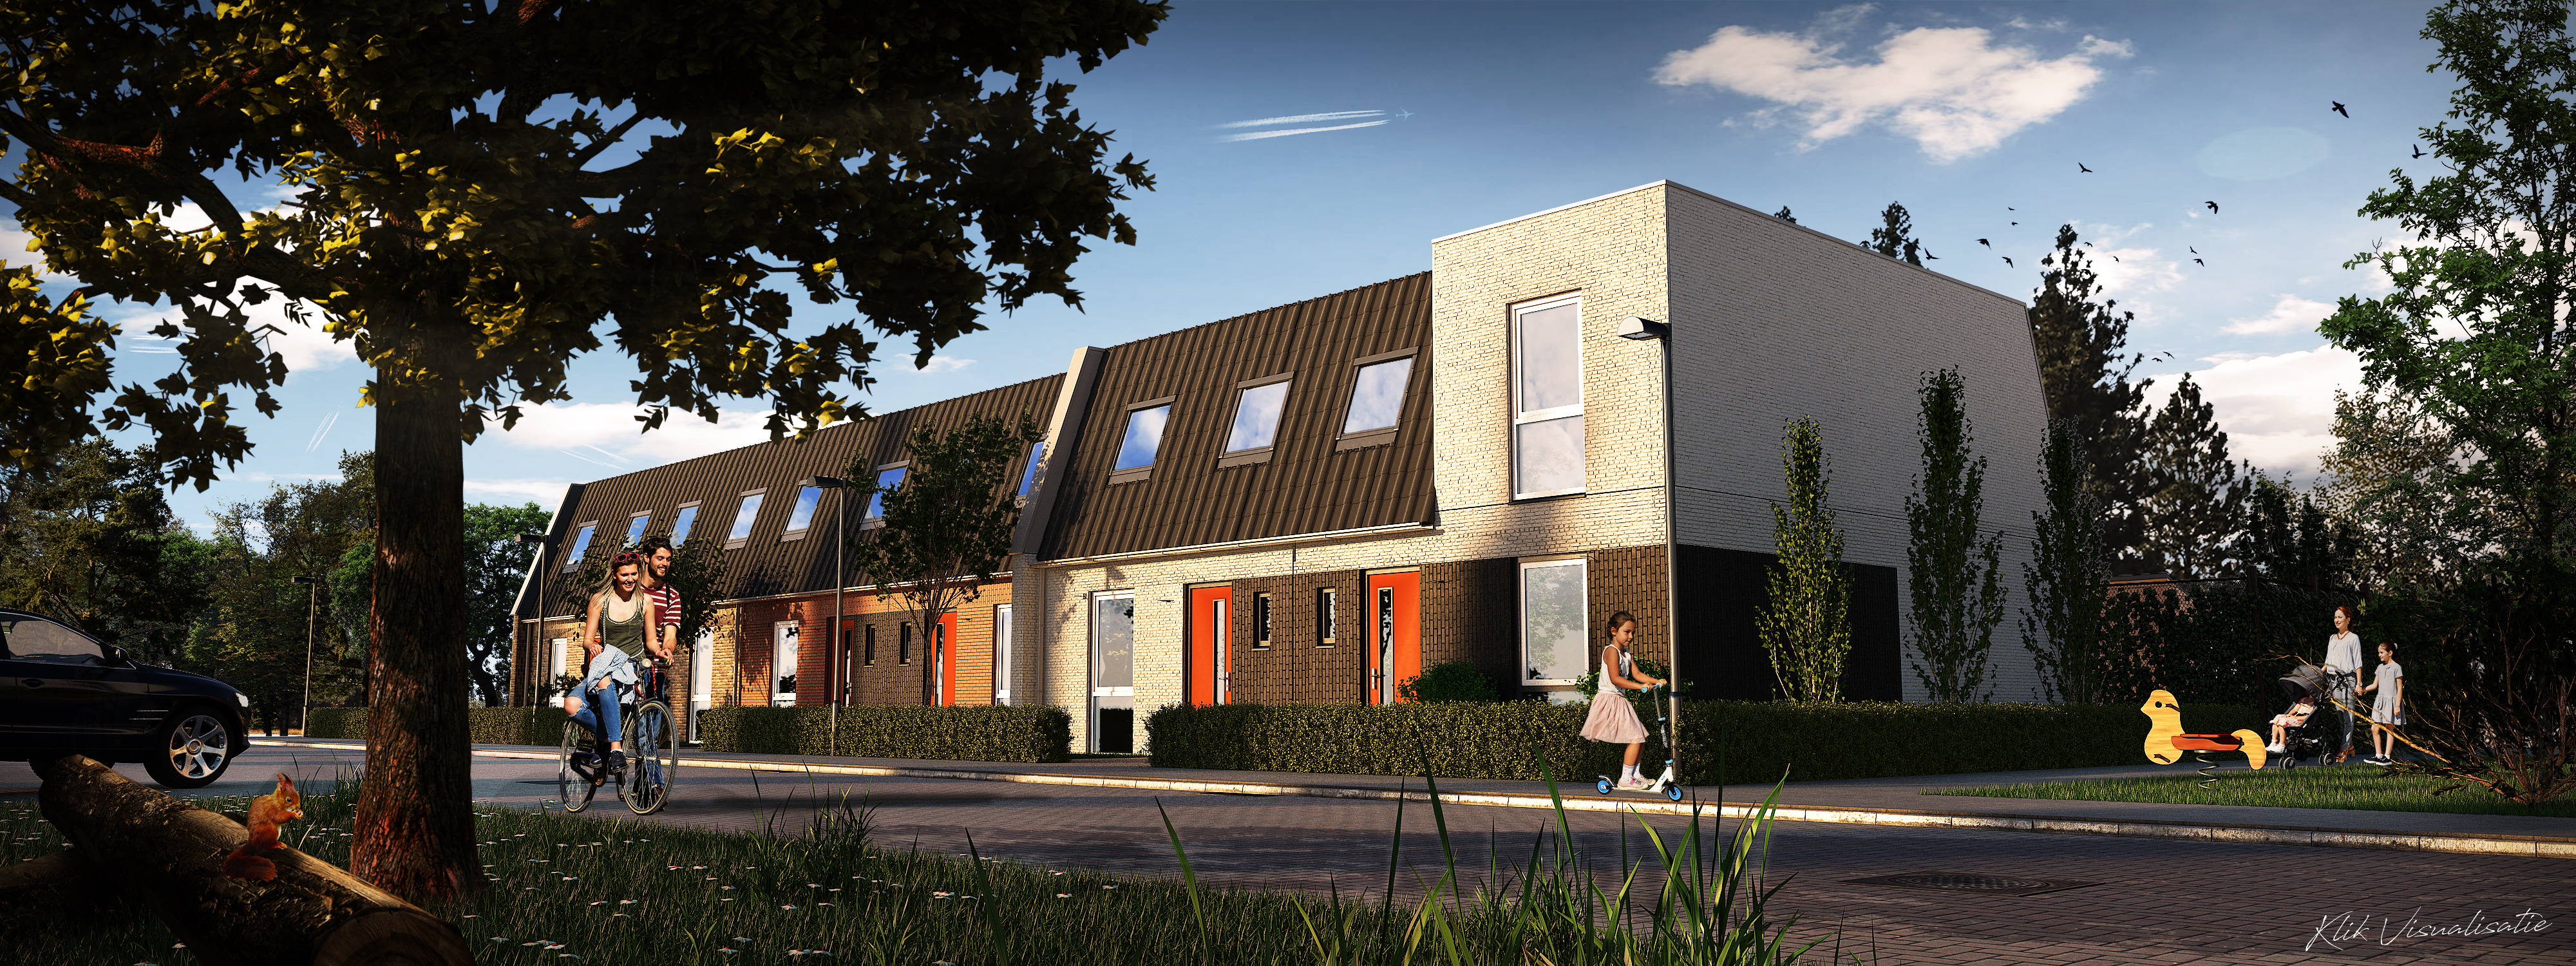 Plegt-Vos - Project te Putten